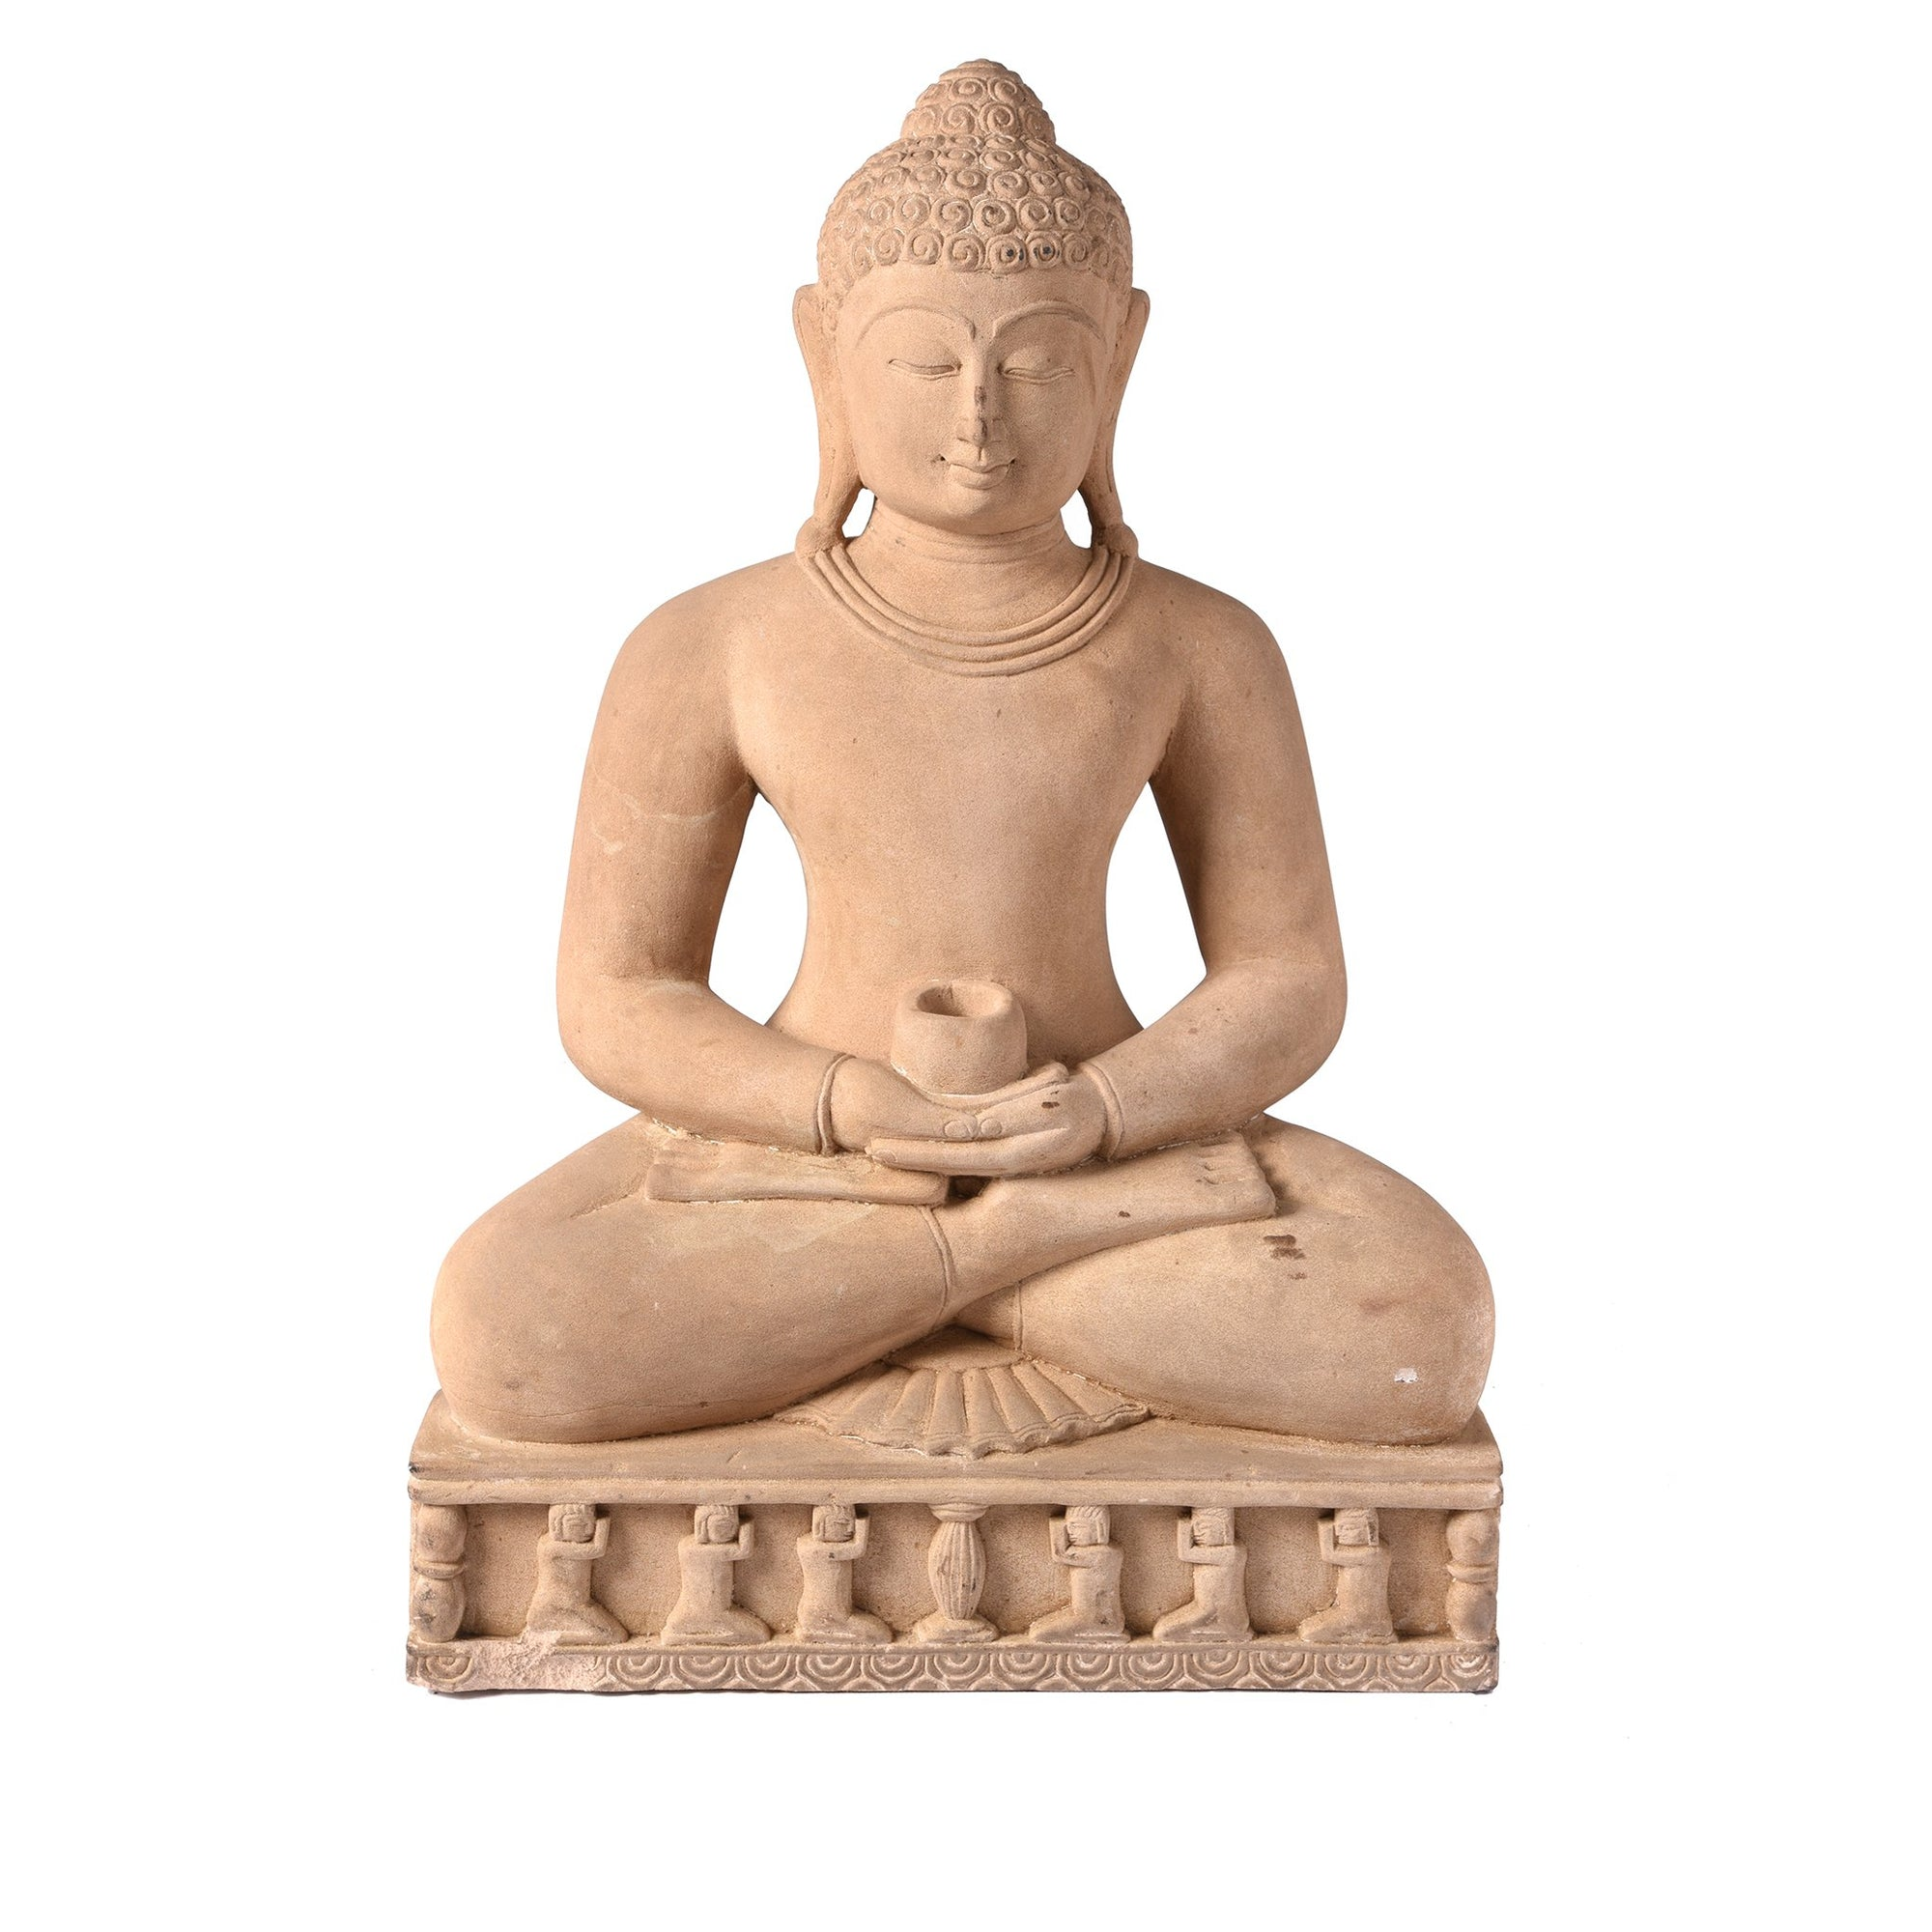 Carved Stone Sitting Buddha Statue in Dhyana Mudra Pose From Patna | Indigo Antiques